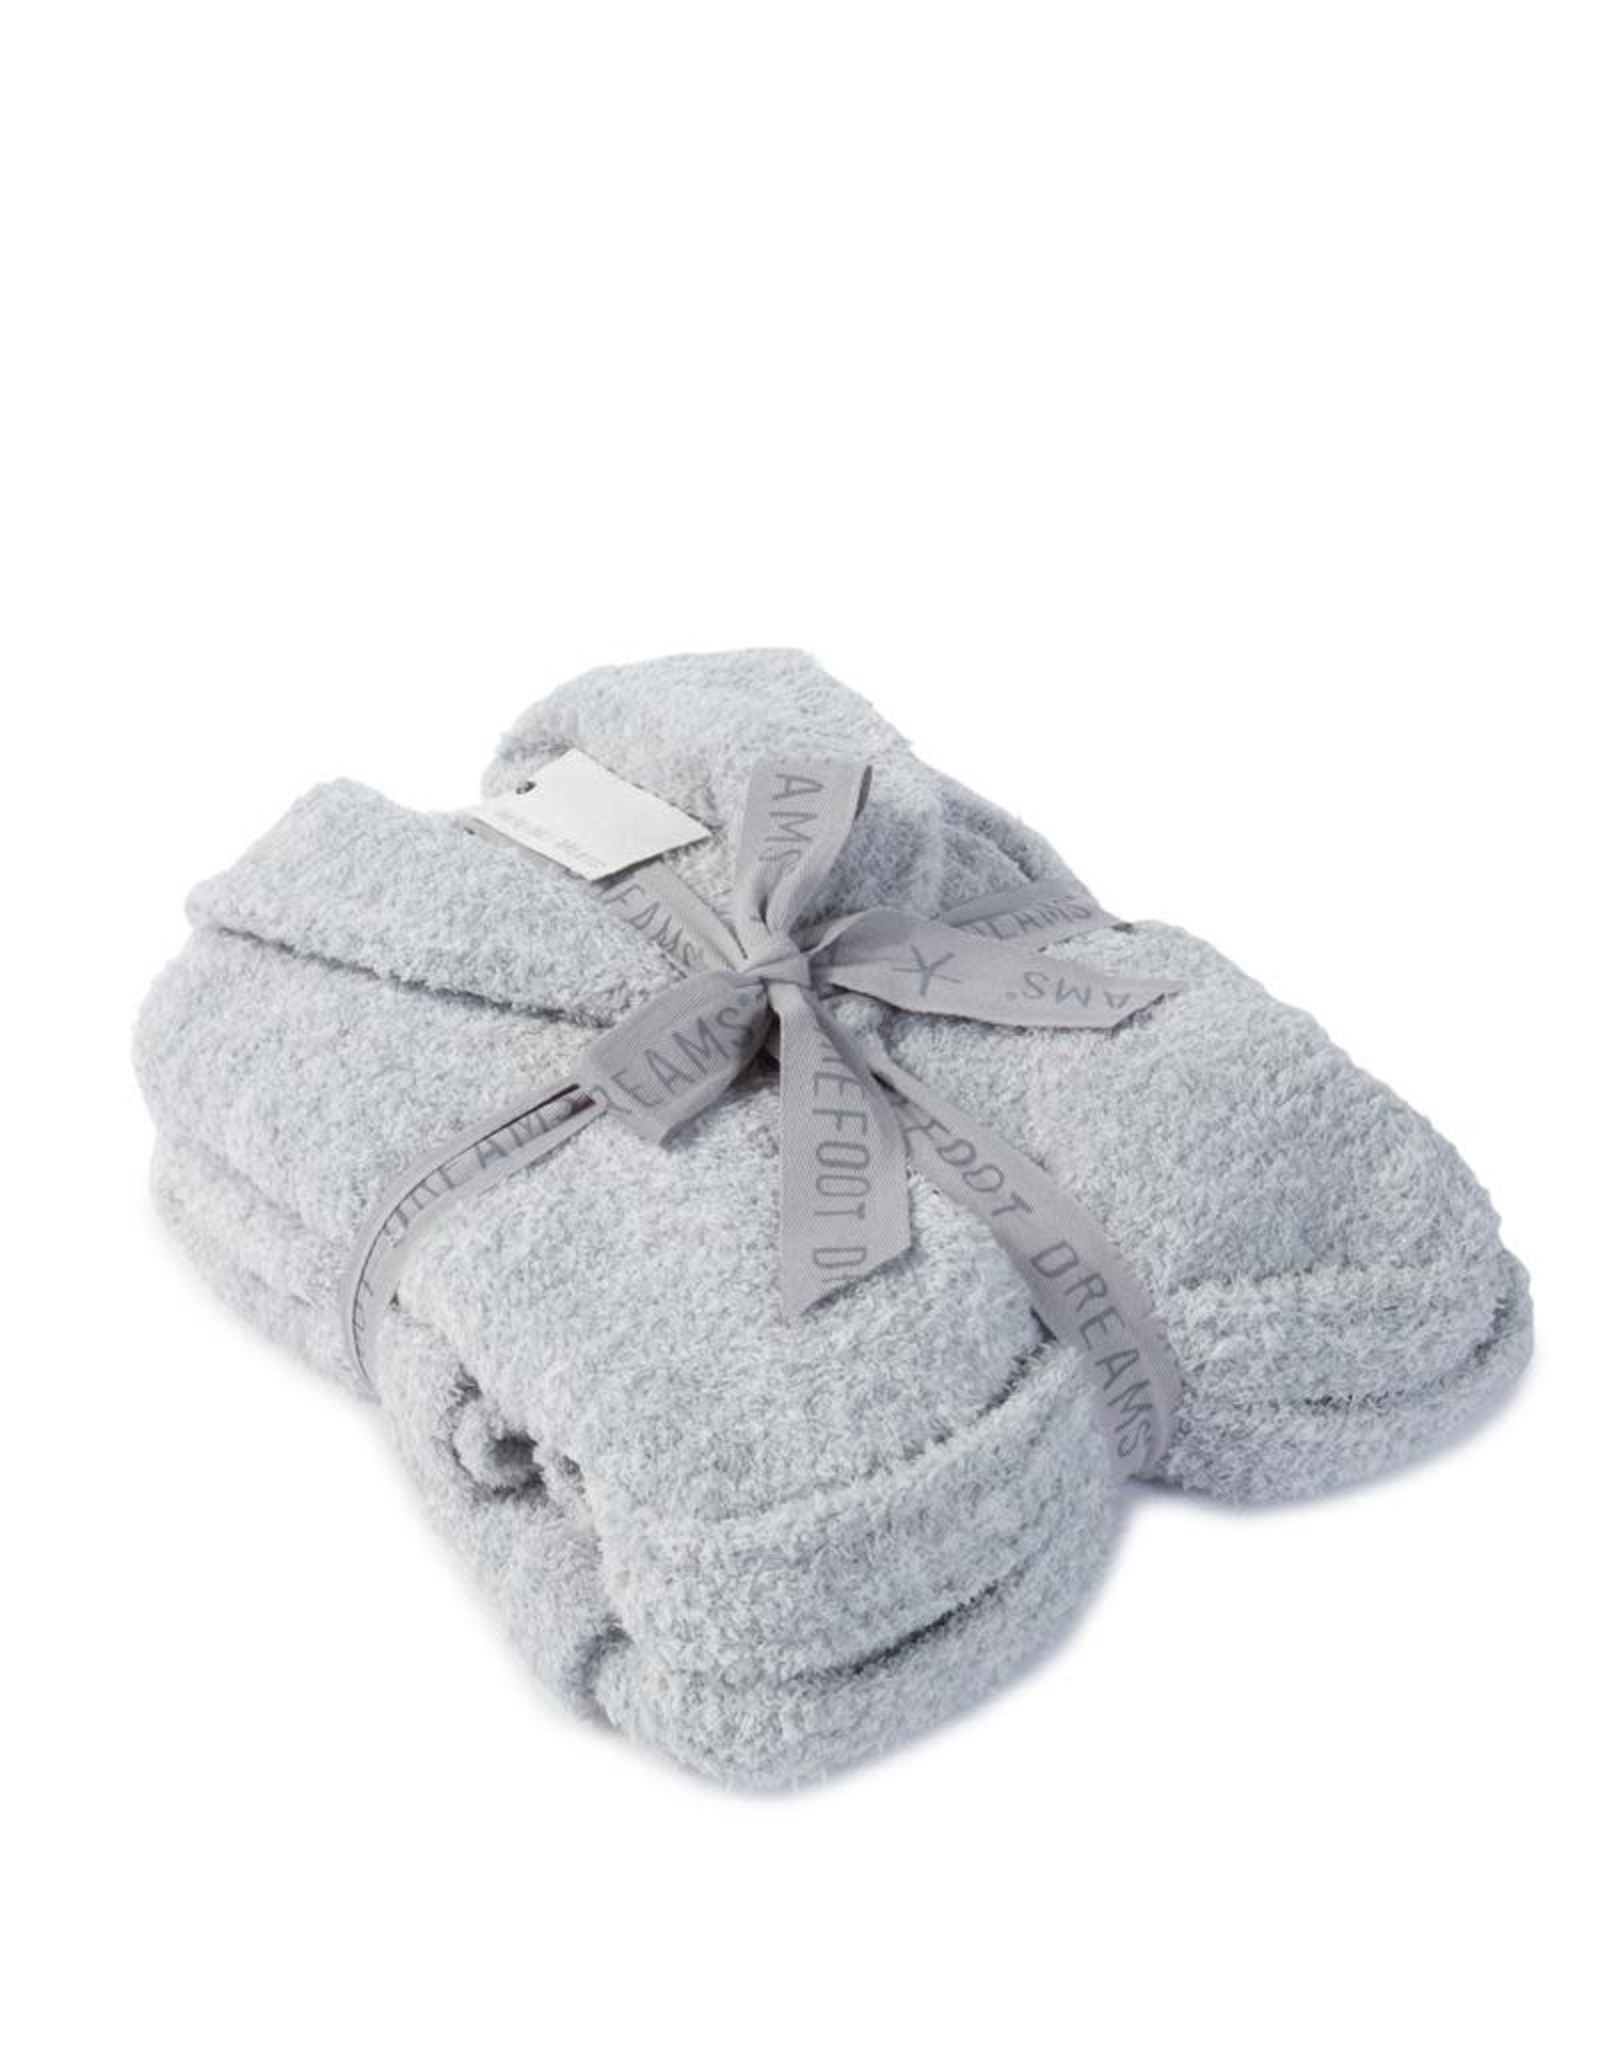 Barefoot Dreams Cozychic Robe - Dove Gray Medium